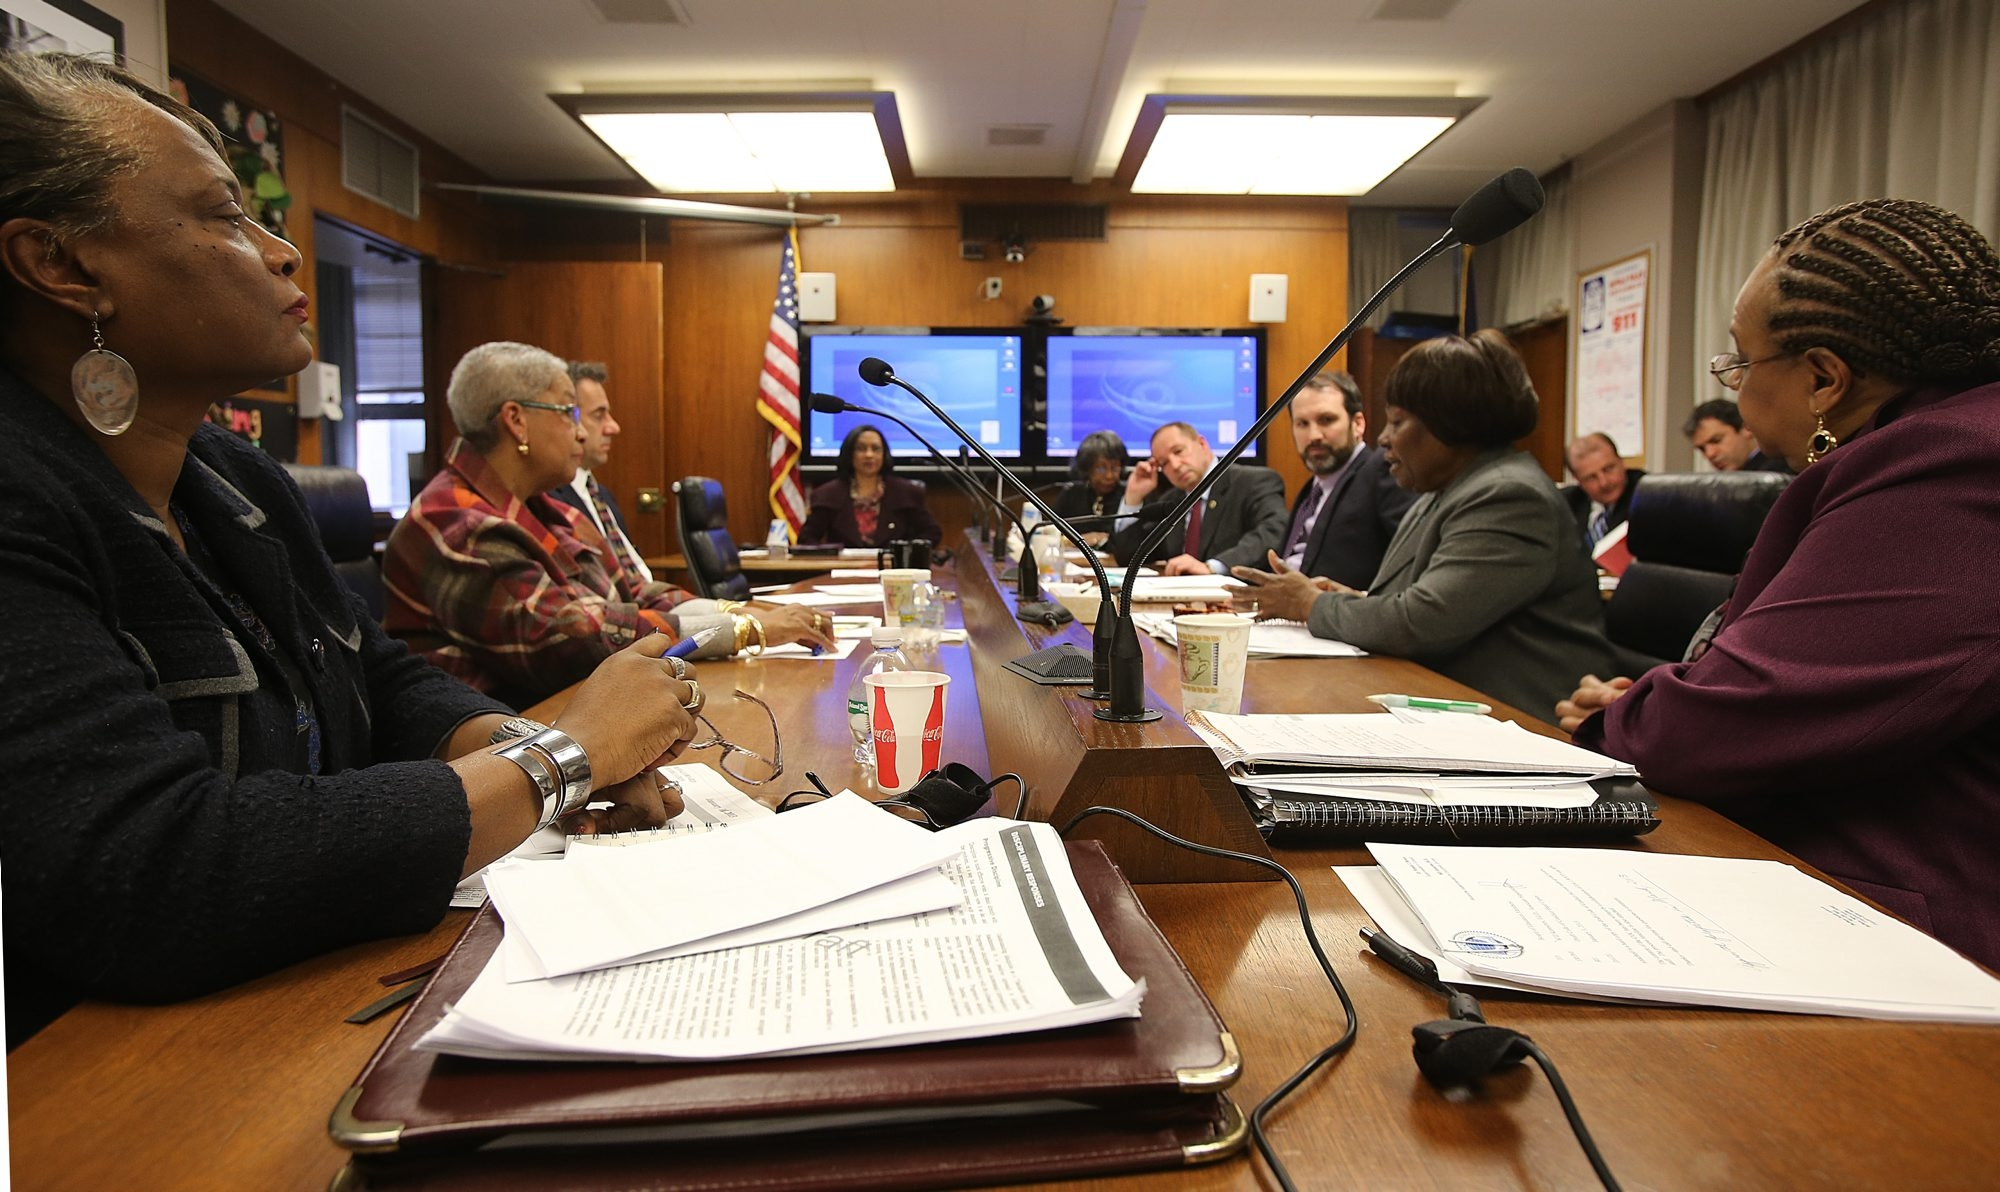 The six district seats on the nine-member Board of Education, shown here at a meeting earlier this year, are up for election. ( Photo by Charles Lewis/Buffalo News)